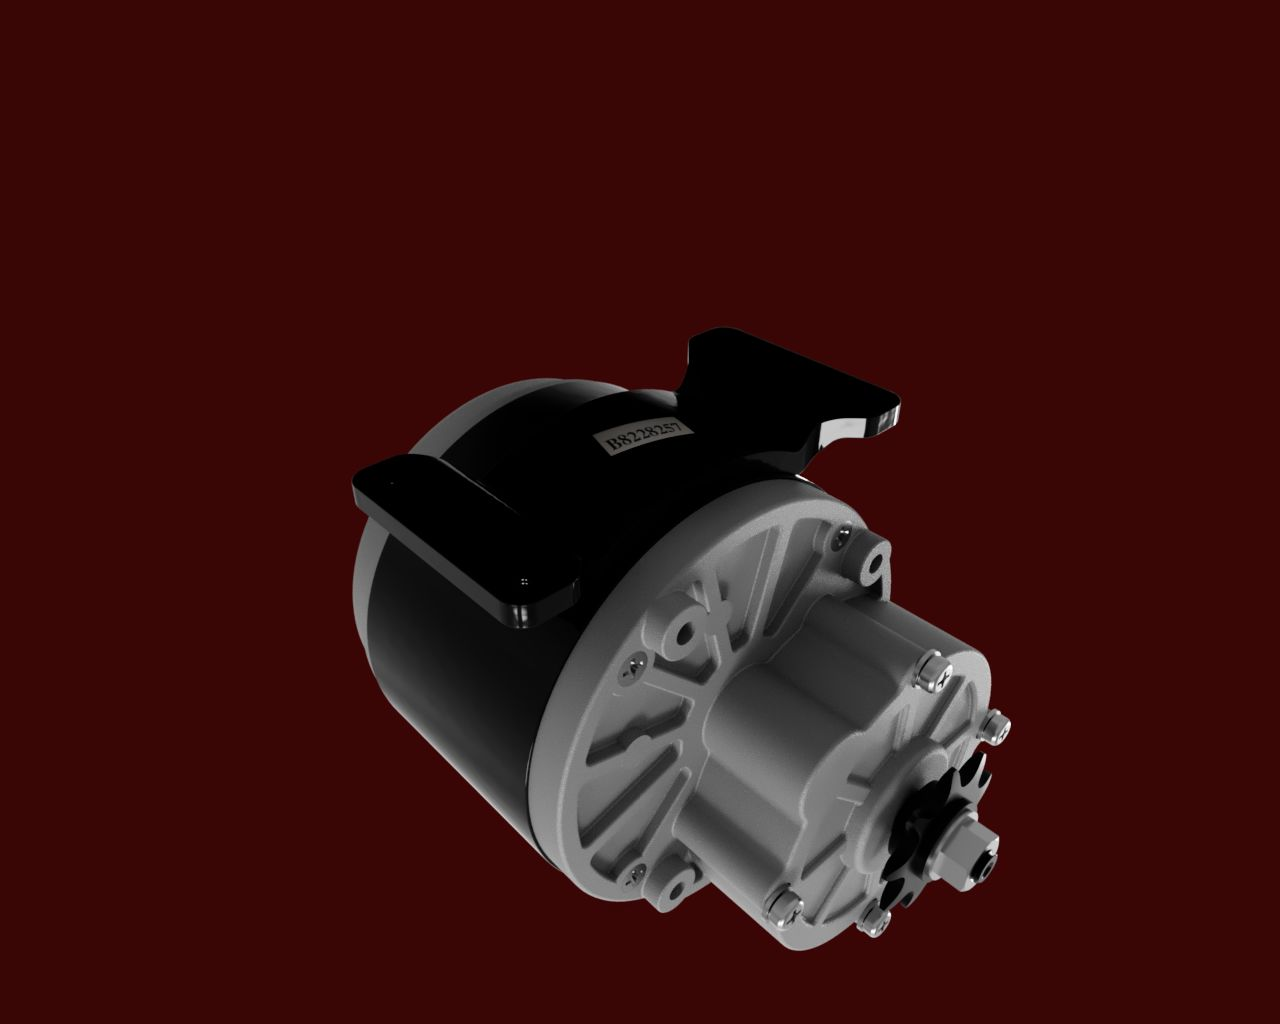 Zhejiang-unite-electric-motor-co--ltd---my1016z3-24v-350w-2019-sep-28-08-56-59pm-000-customizedview12859612413-png-3500-3500